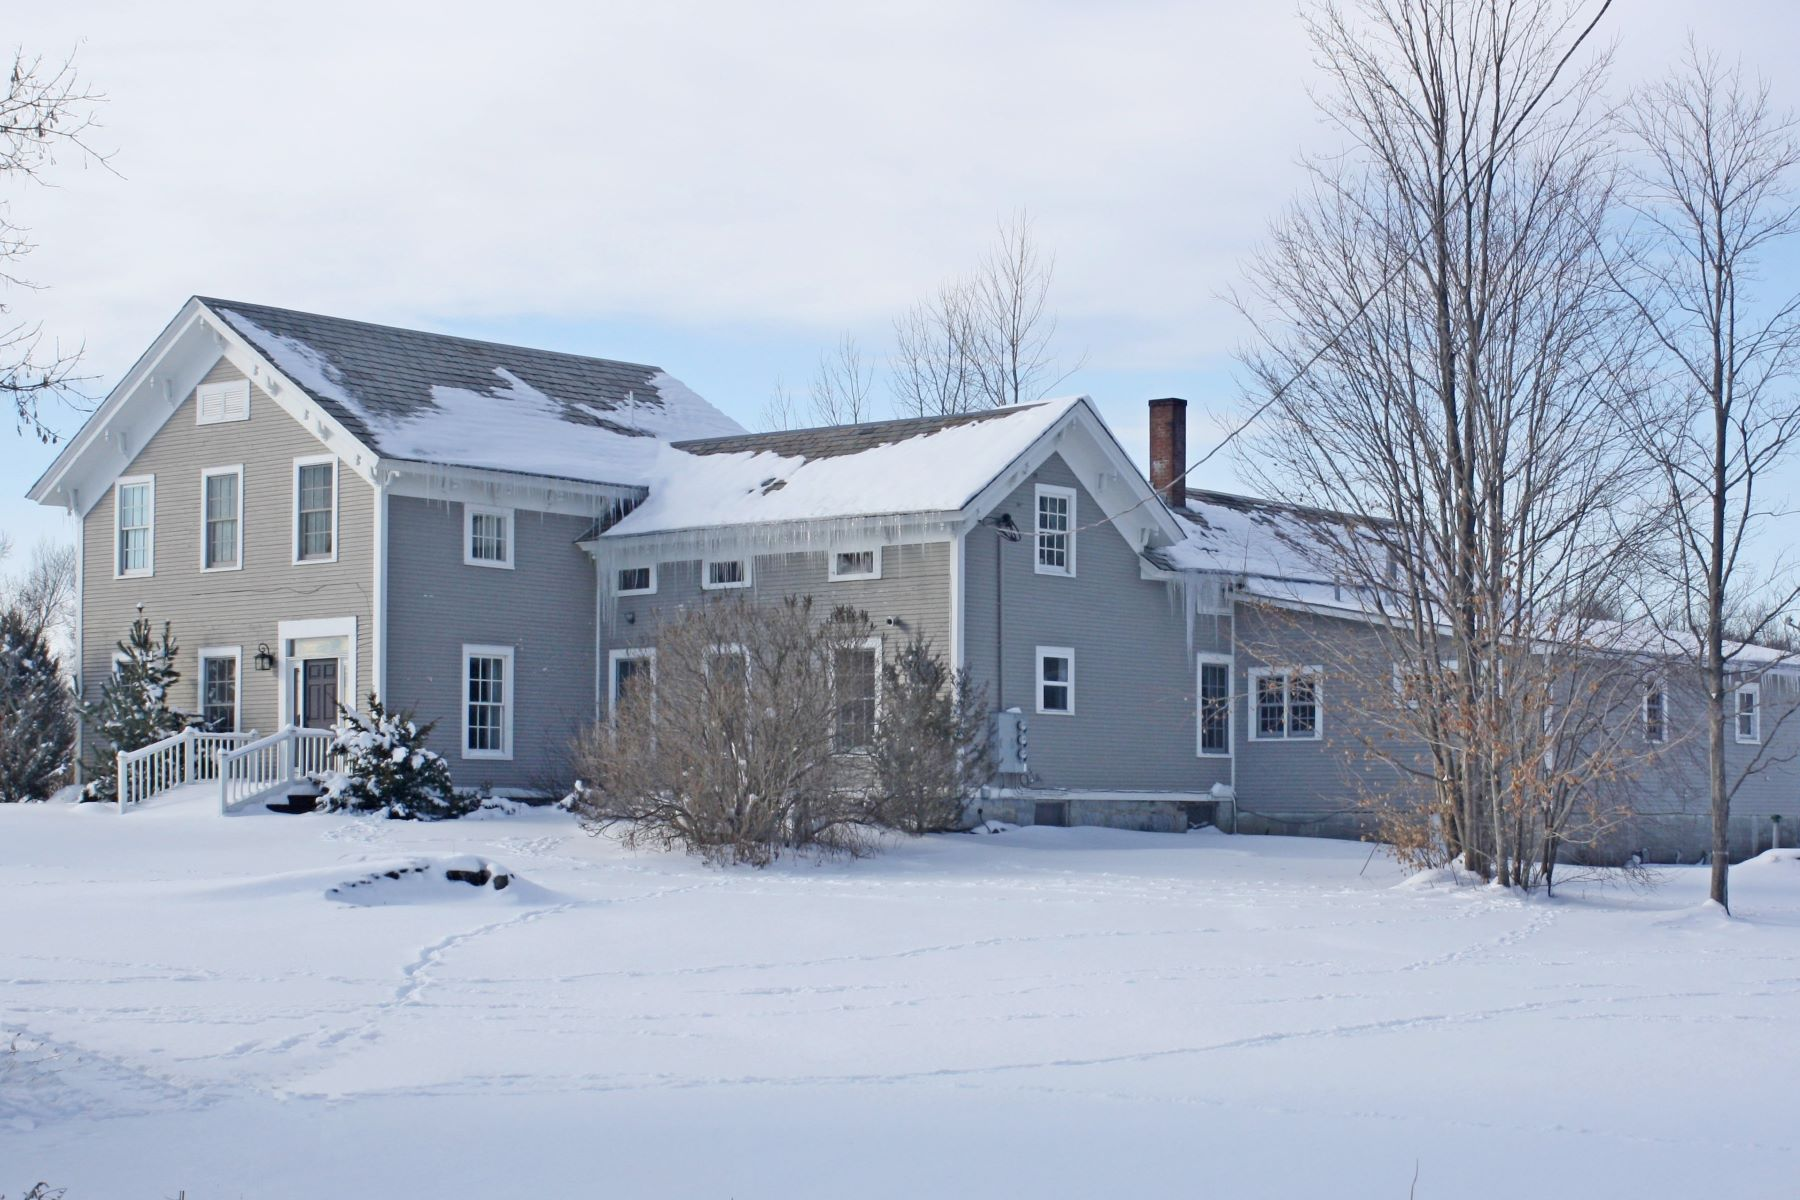 Single Family Home for Sale at 1986 Route 74, Cornwall Cornwall, Vermont, 05753 United States